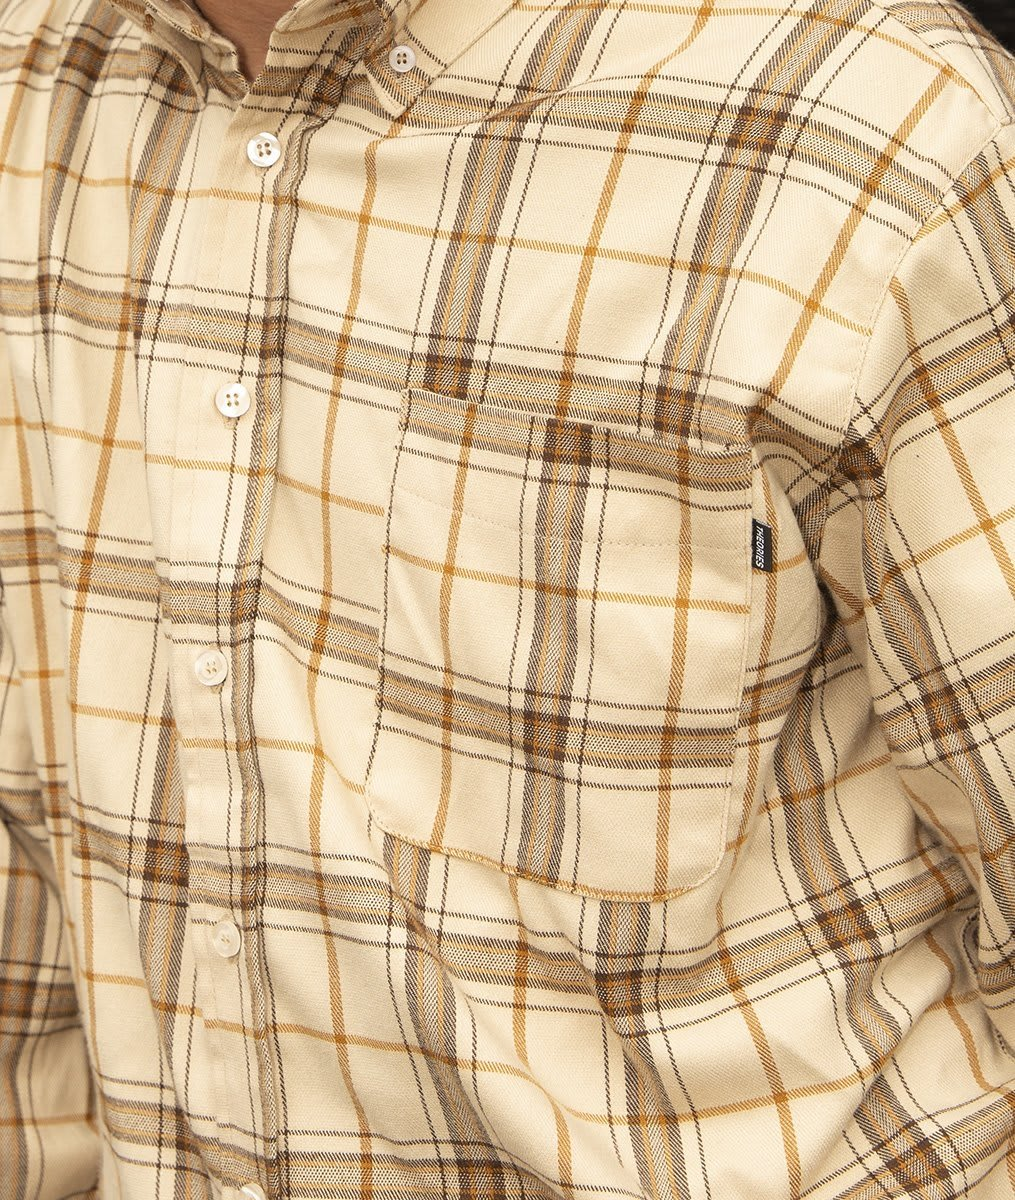 TOA - Tartan Flannel Button Down   Shirt by Theories of Atlantis 2